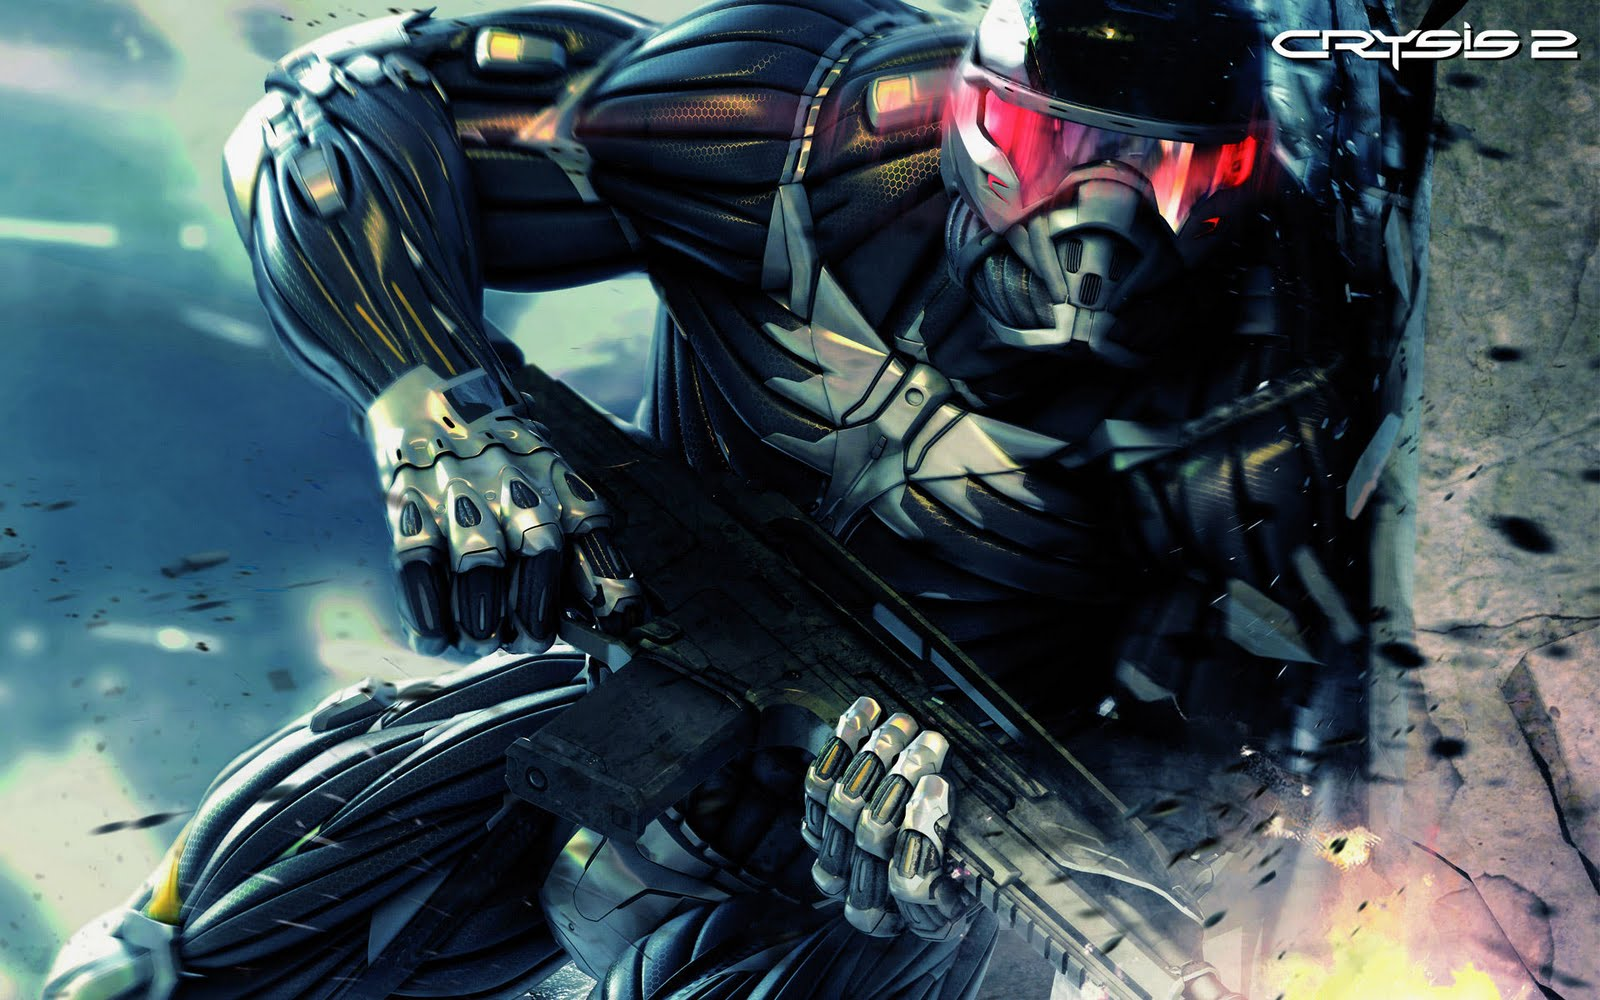 Télécharger télécharger crysis-2 PS3 Xbox live wallpaper HD